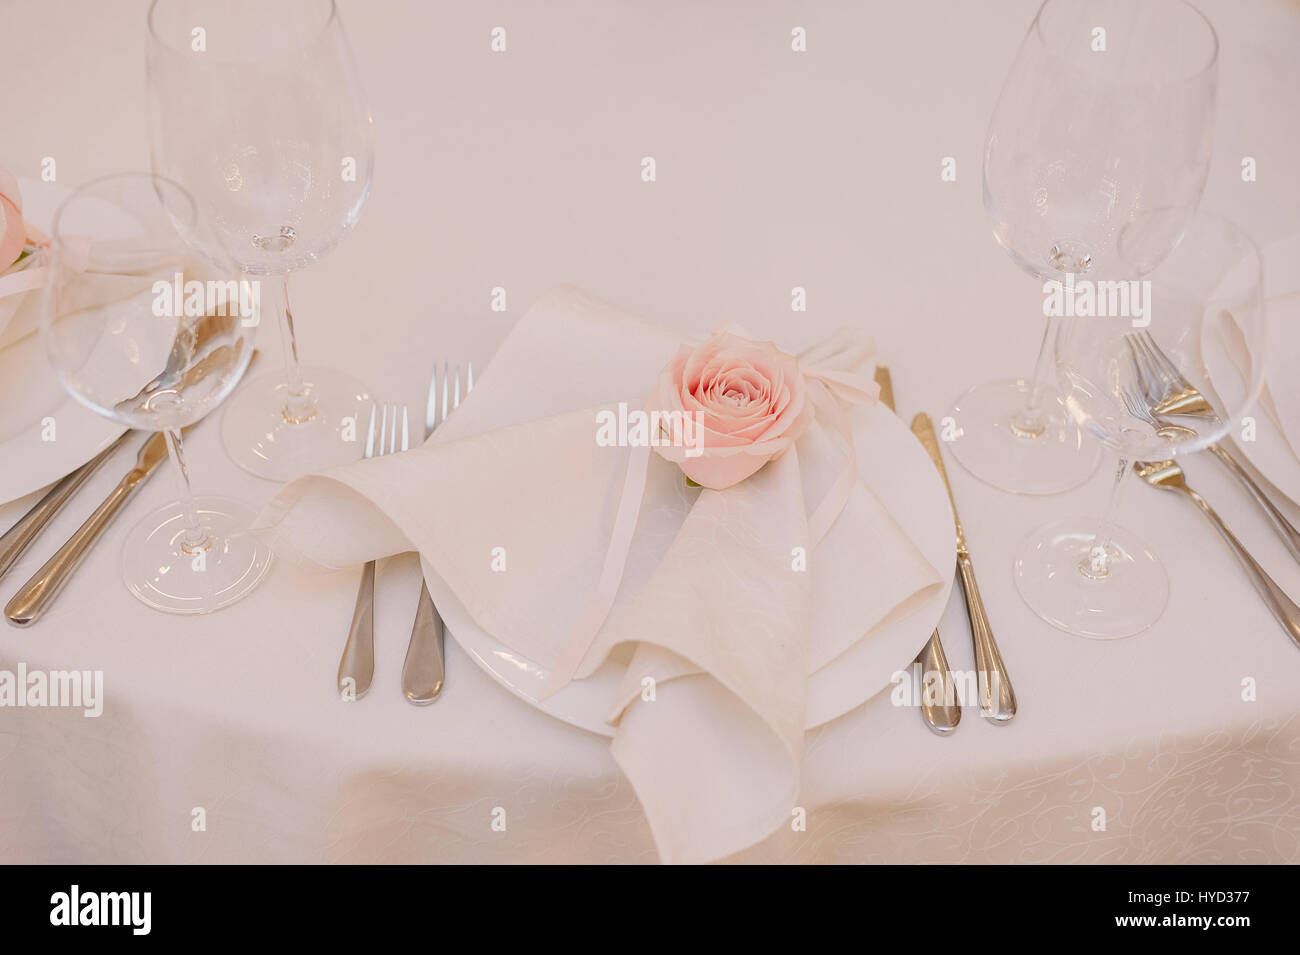 Wedding table decoration of the napkin with the light pink rose on the plate - Stock Image